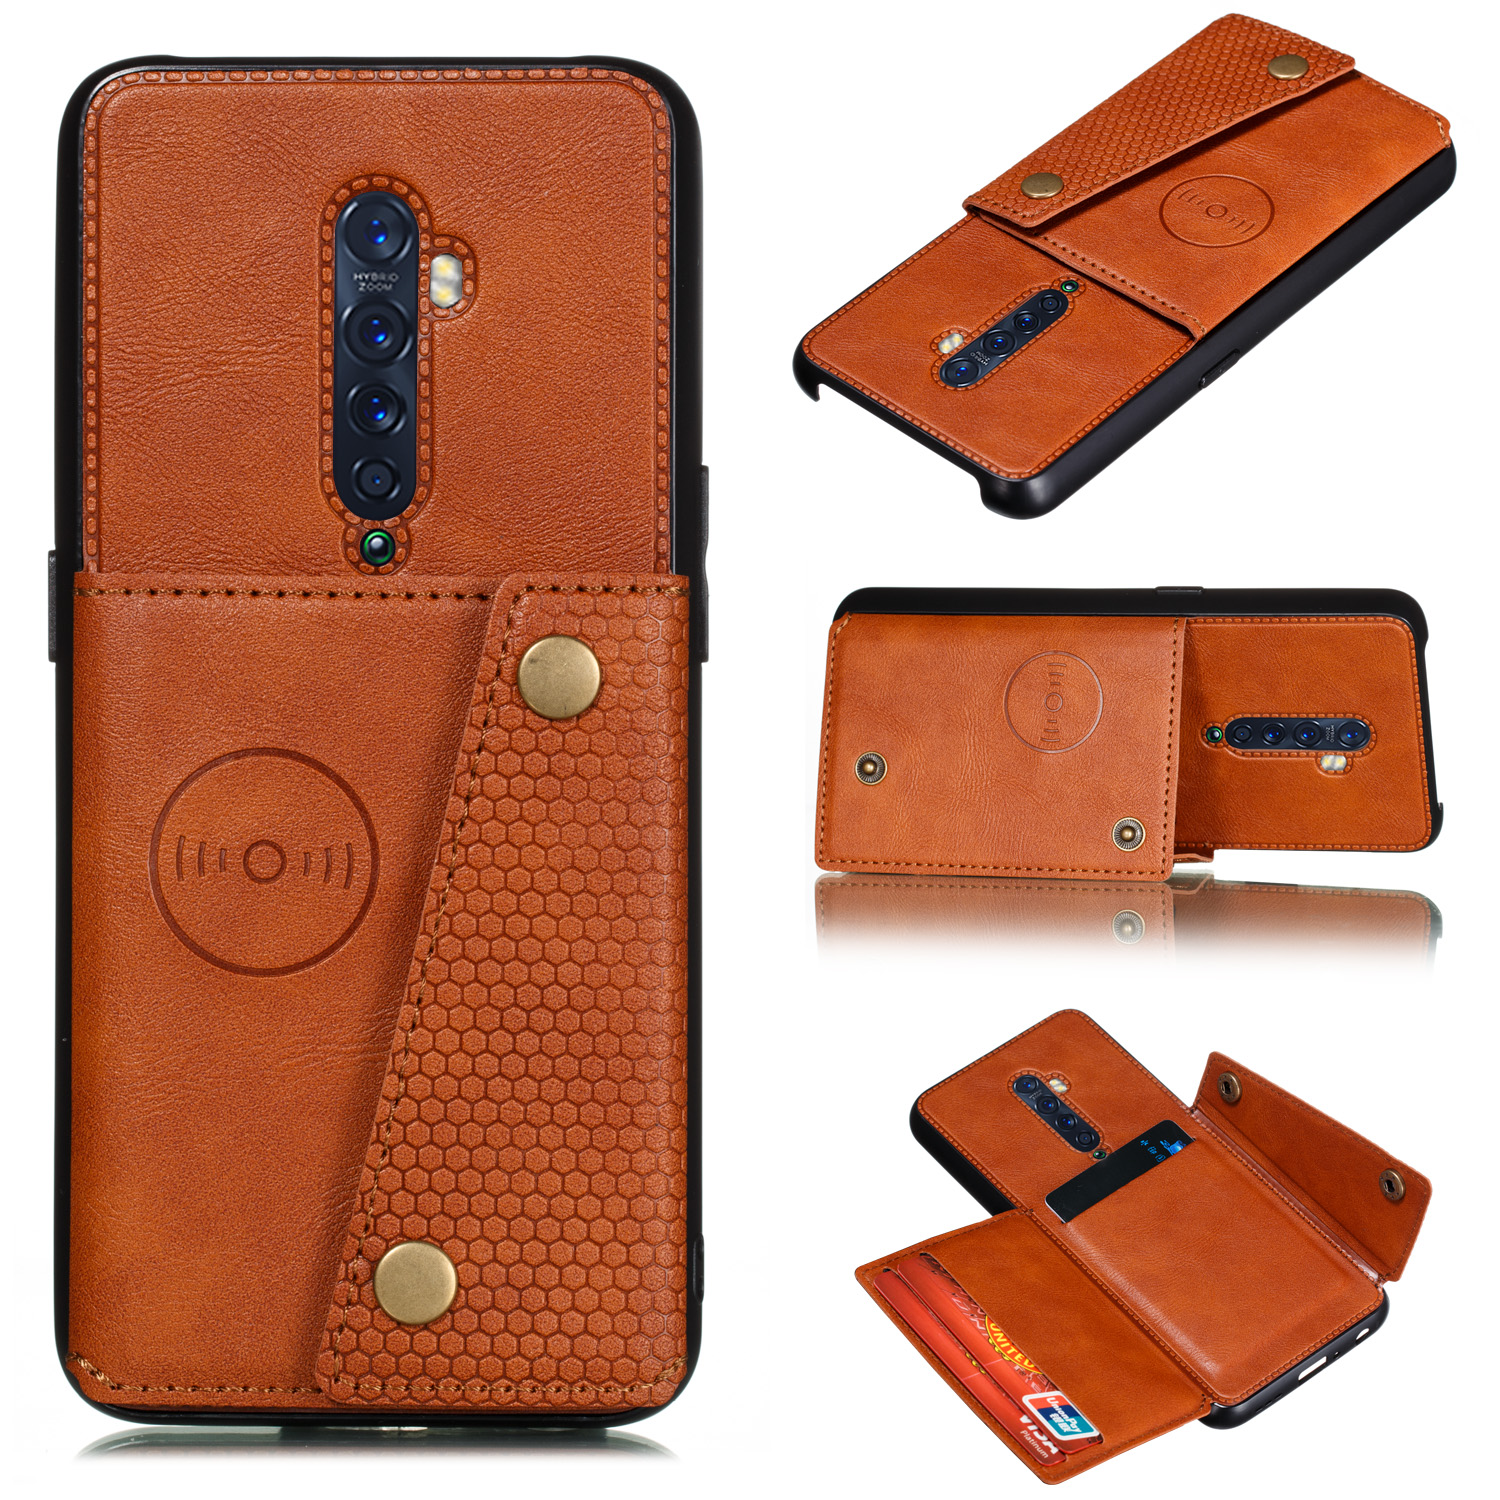 For OPPO A9 2020/Realme XT/Reno 2 Mobile Phone Shell Classic Textured Pattern Buckle Closure Design Anti-fall Smartphone Case  brown